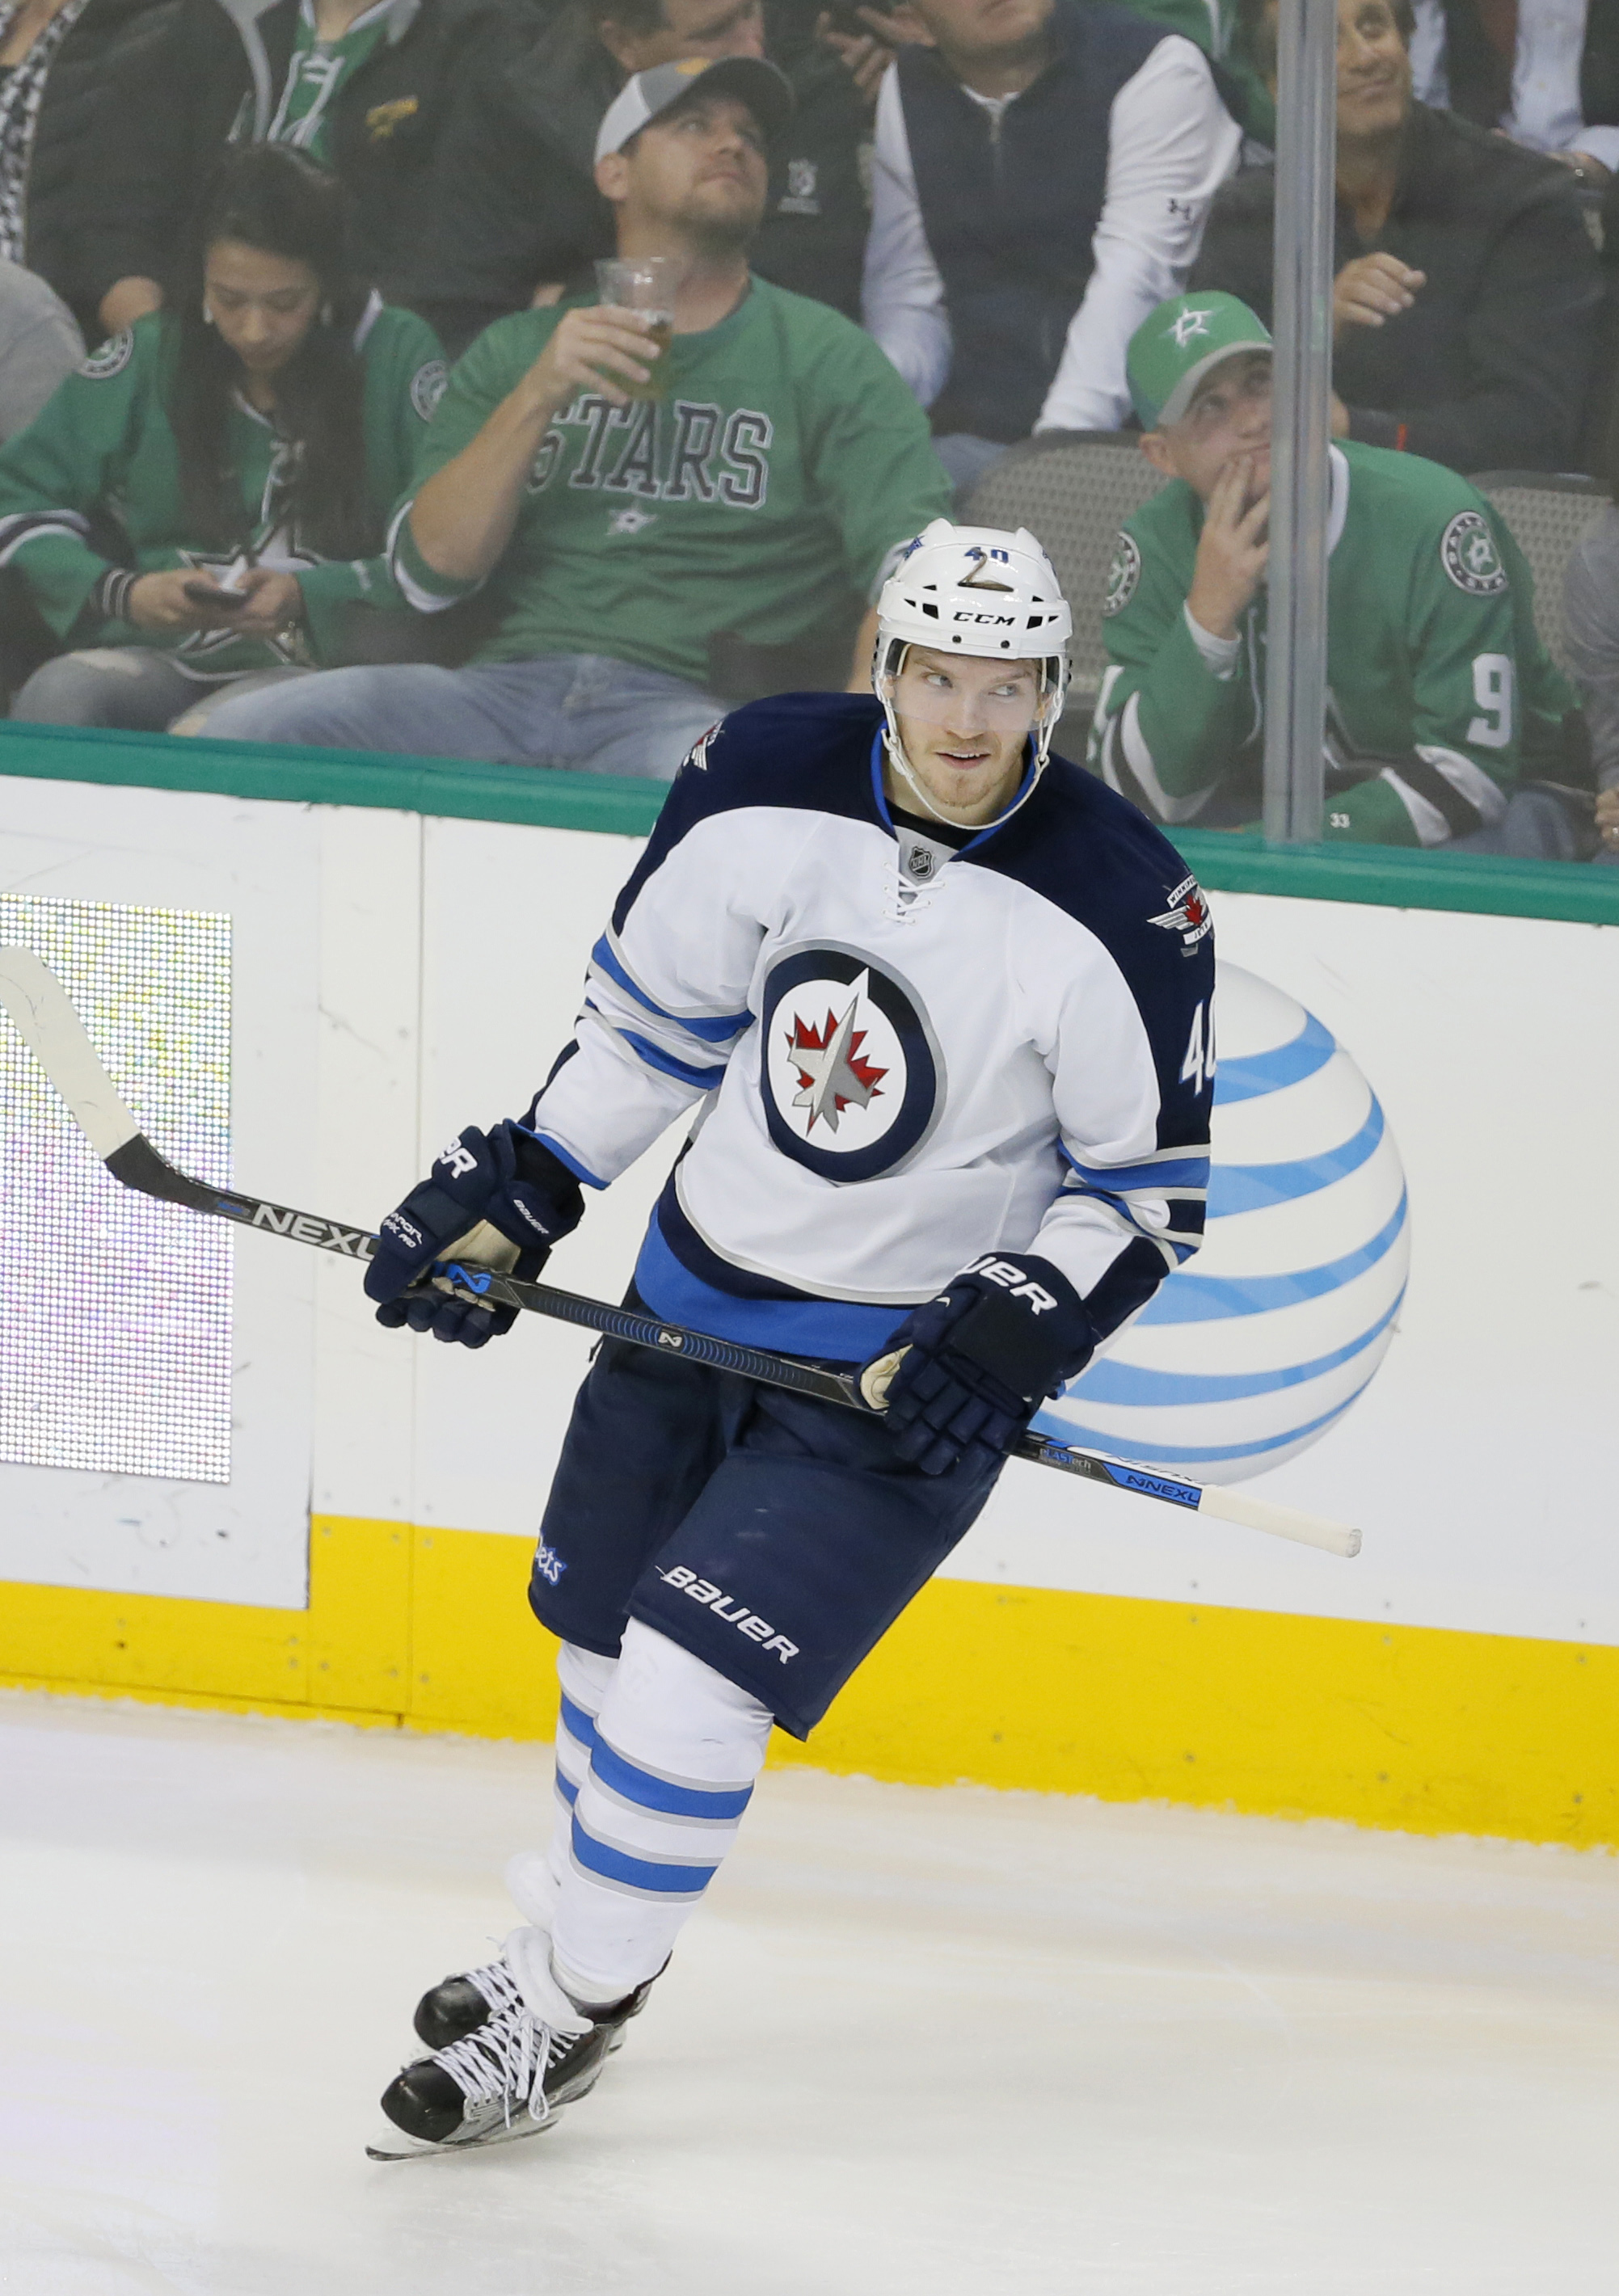 Winnipeg Jets' Joel Armia (40) of Finland skates back to the bench after scoring a goal against the Dallas Stars in the third period of an NHL hockey game, Thursday, Feb. 25, 2016, in Dallas. The Jets won 6-3. (AP Photo/Tony Gutierrez)